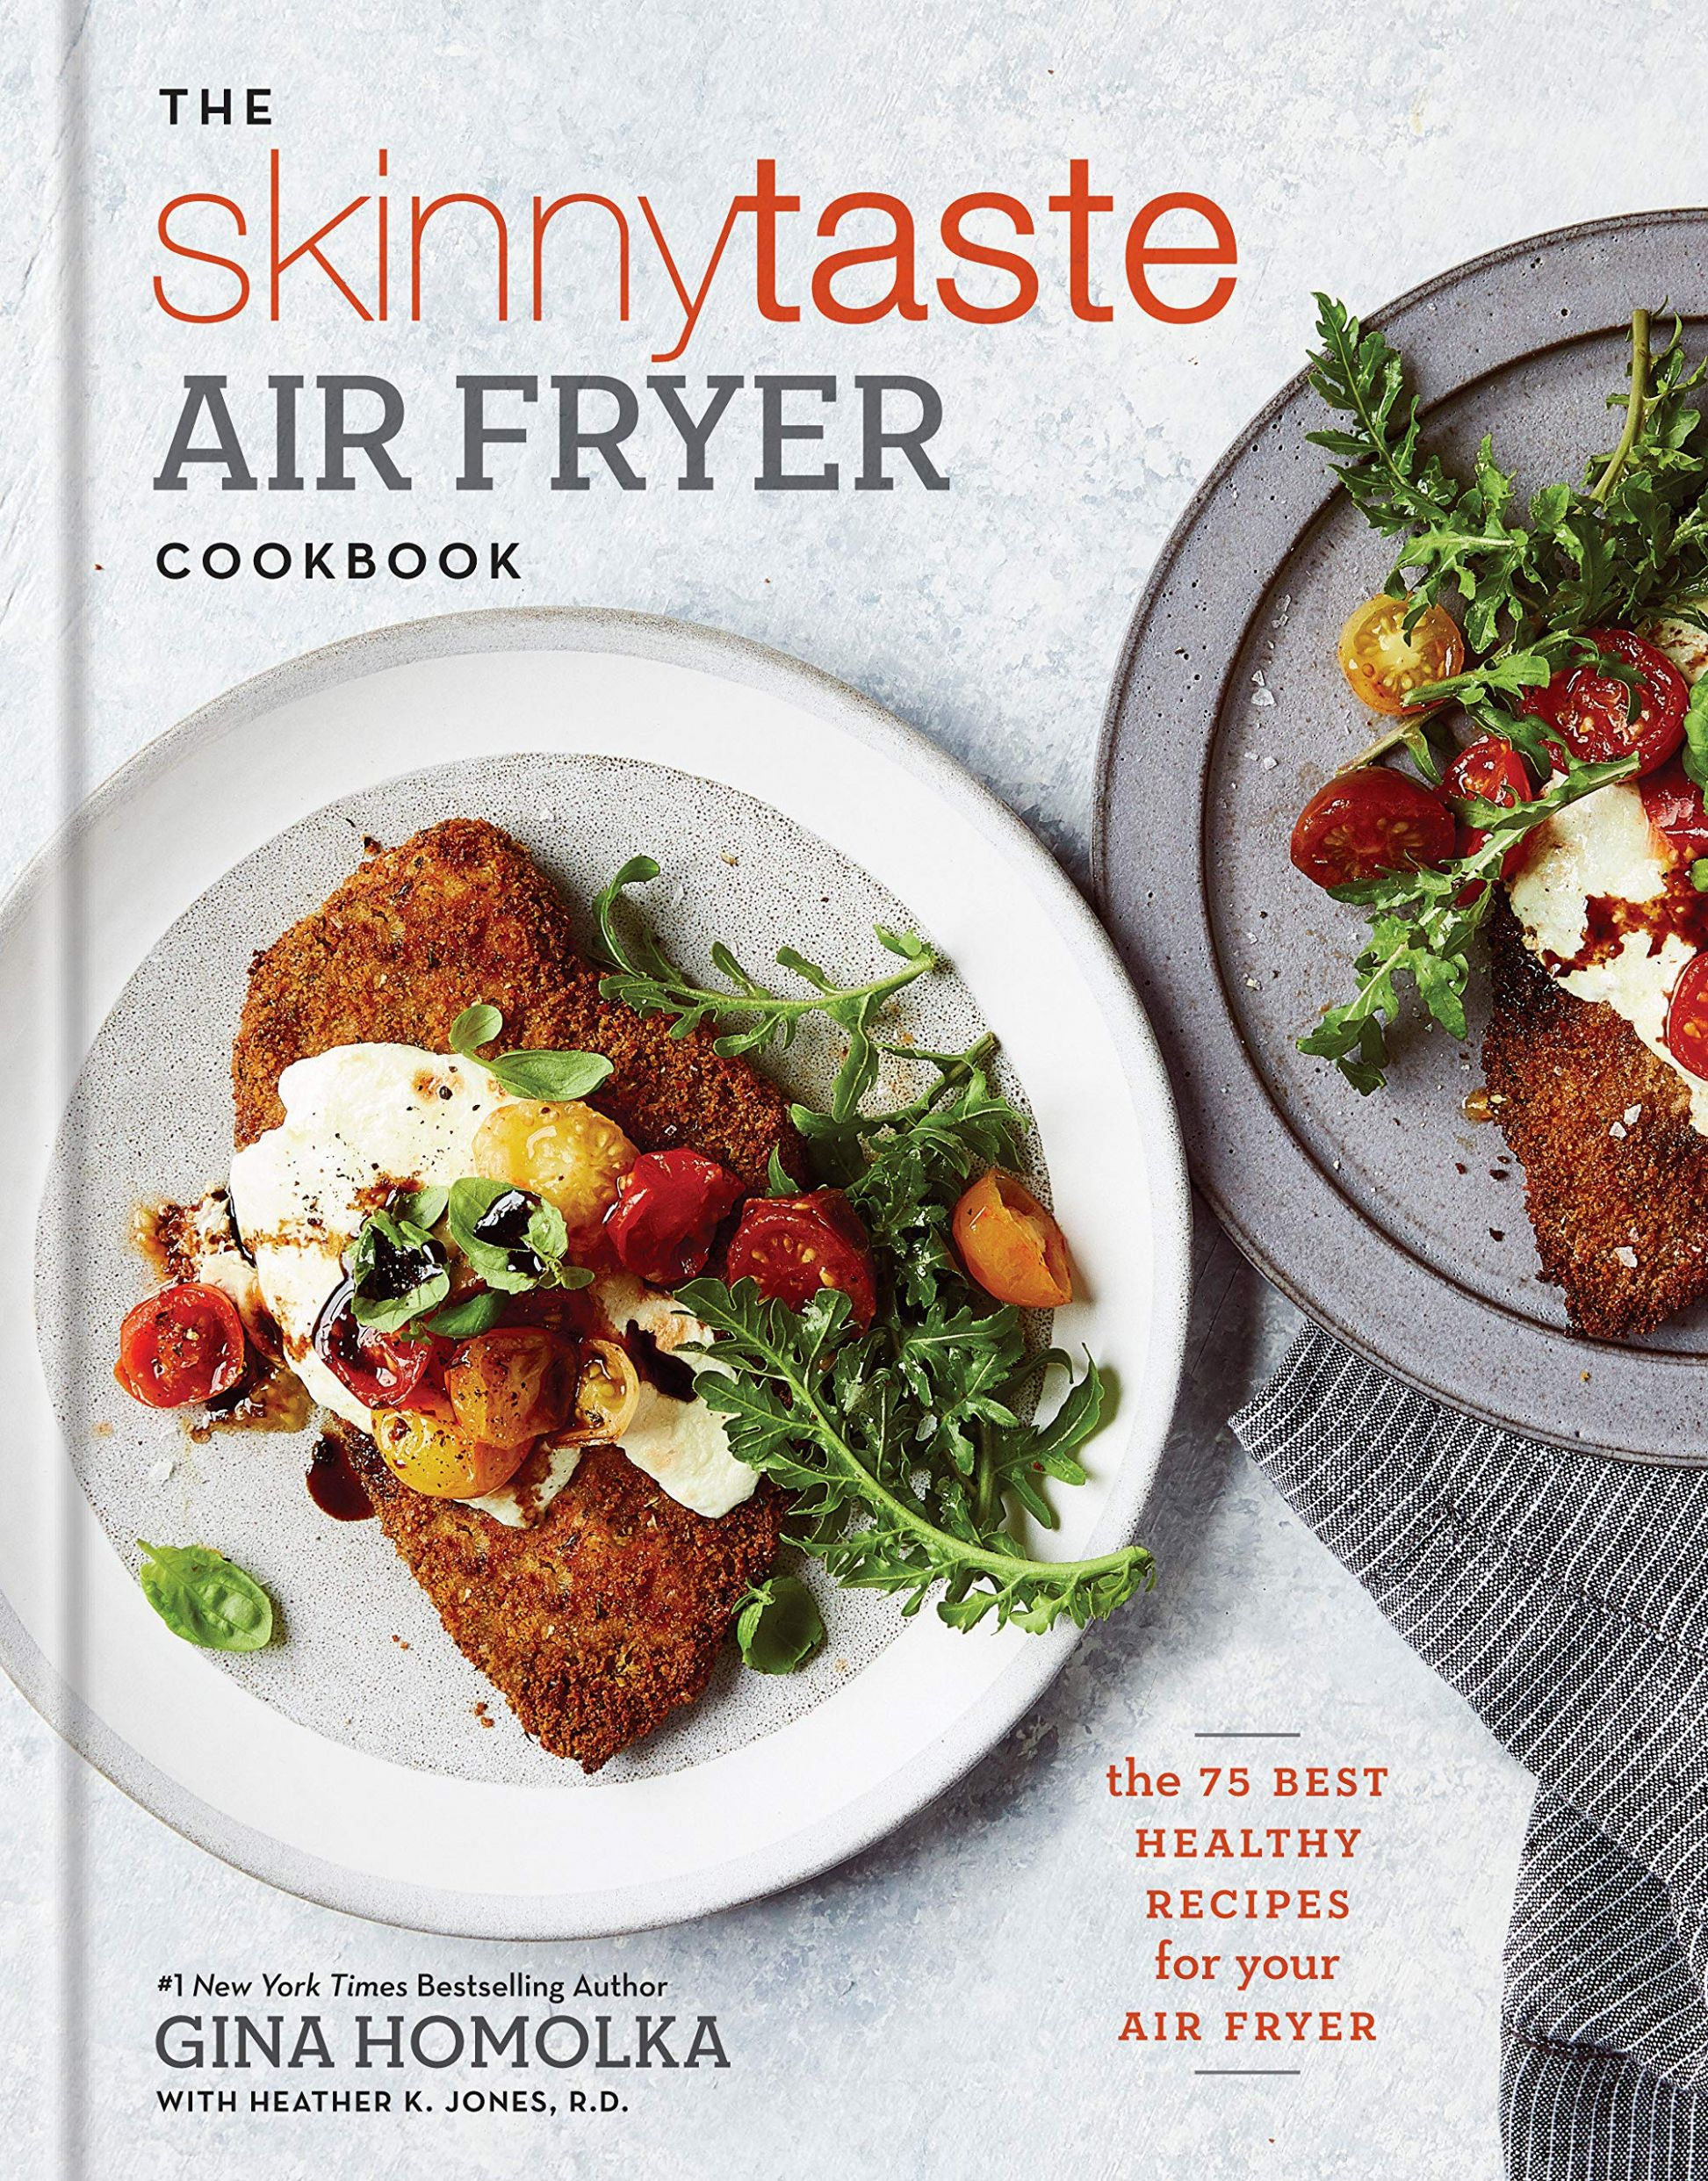 The Skinnytaste Air Fryer Cookbook: The 9 Best Healthy Recipes for Your  Air Fryer